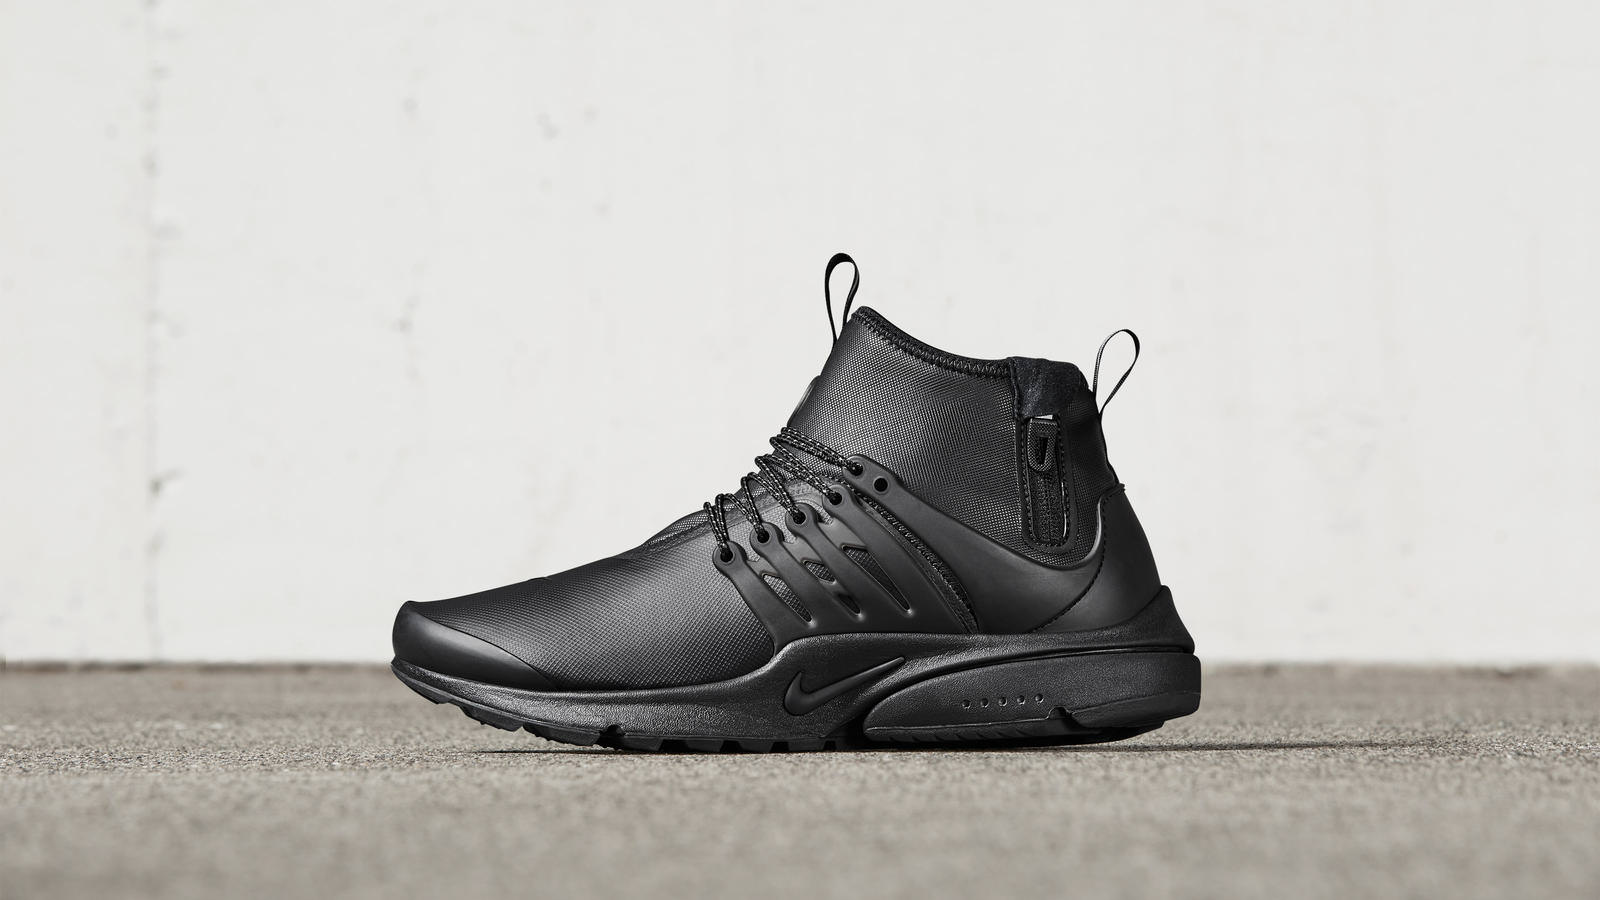 58194762c5fddf0f70aade79_161026_footwear_sneakerboot_p_0064r_hd_1600